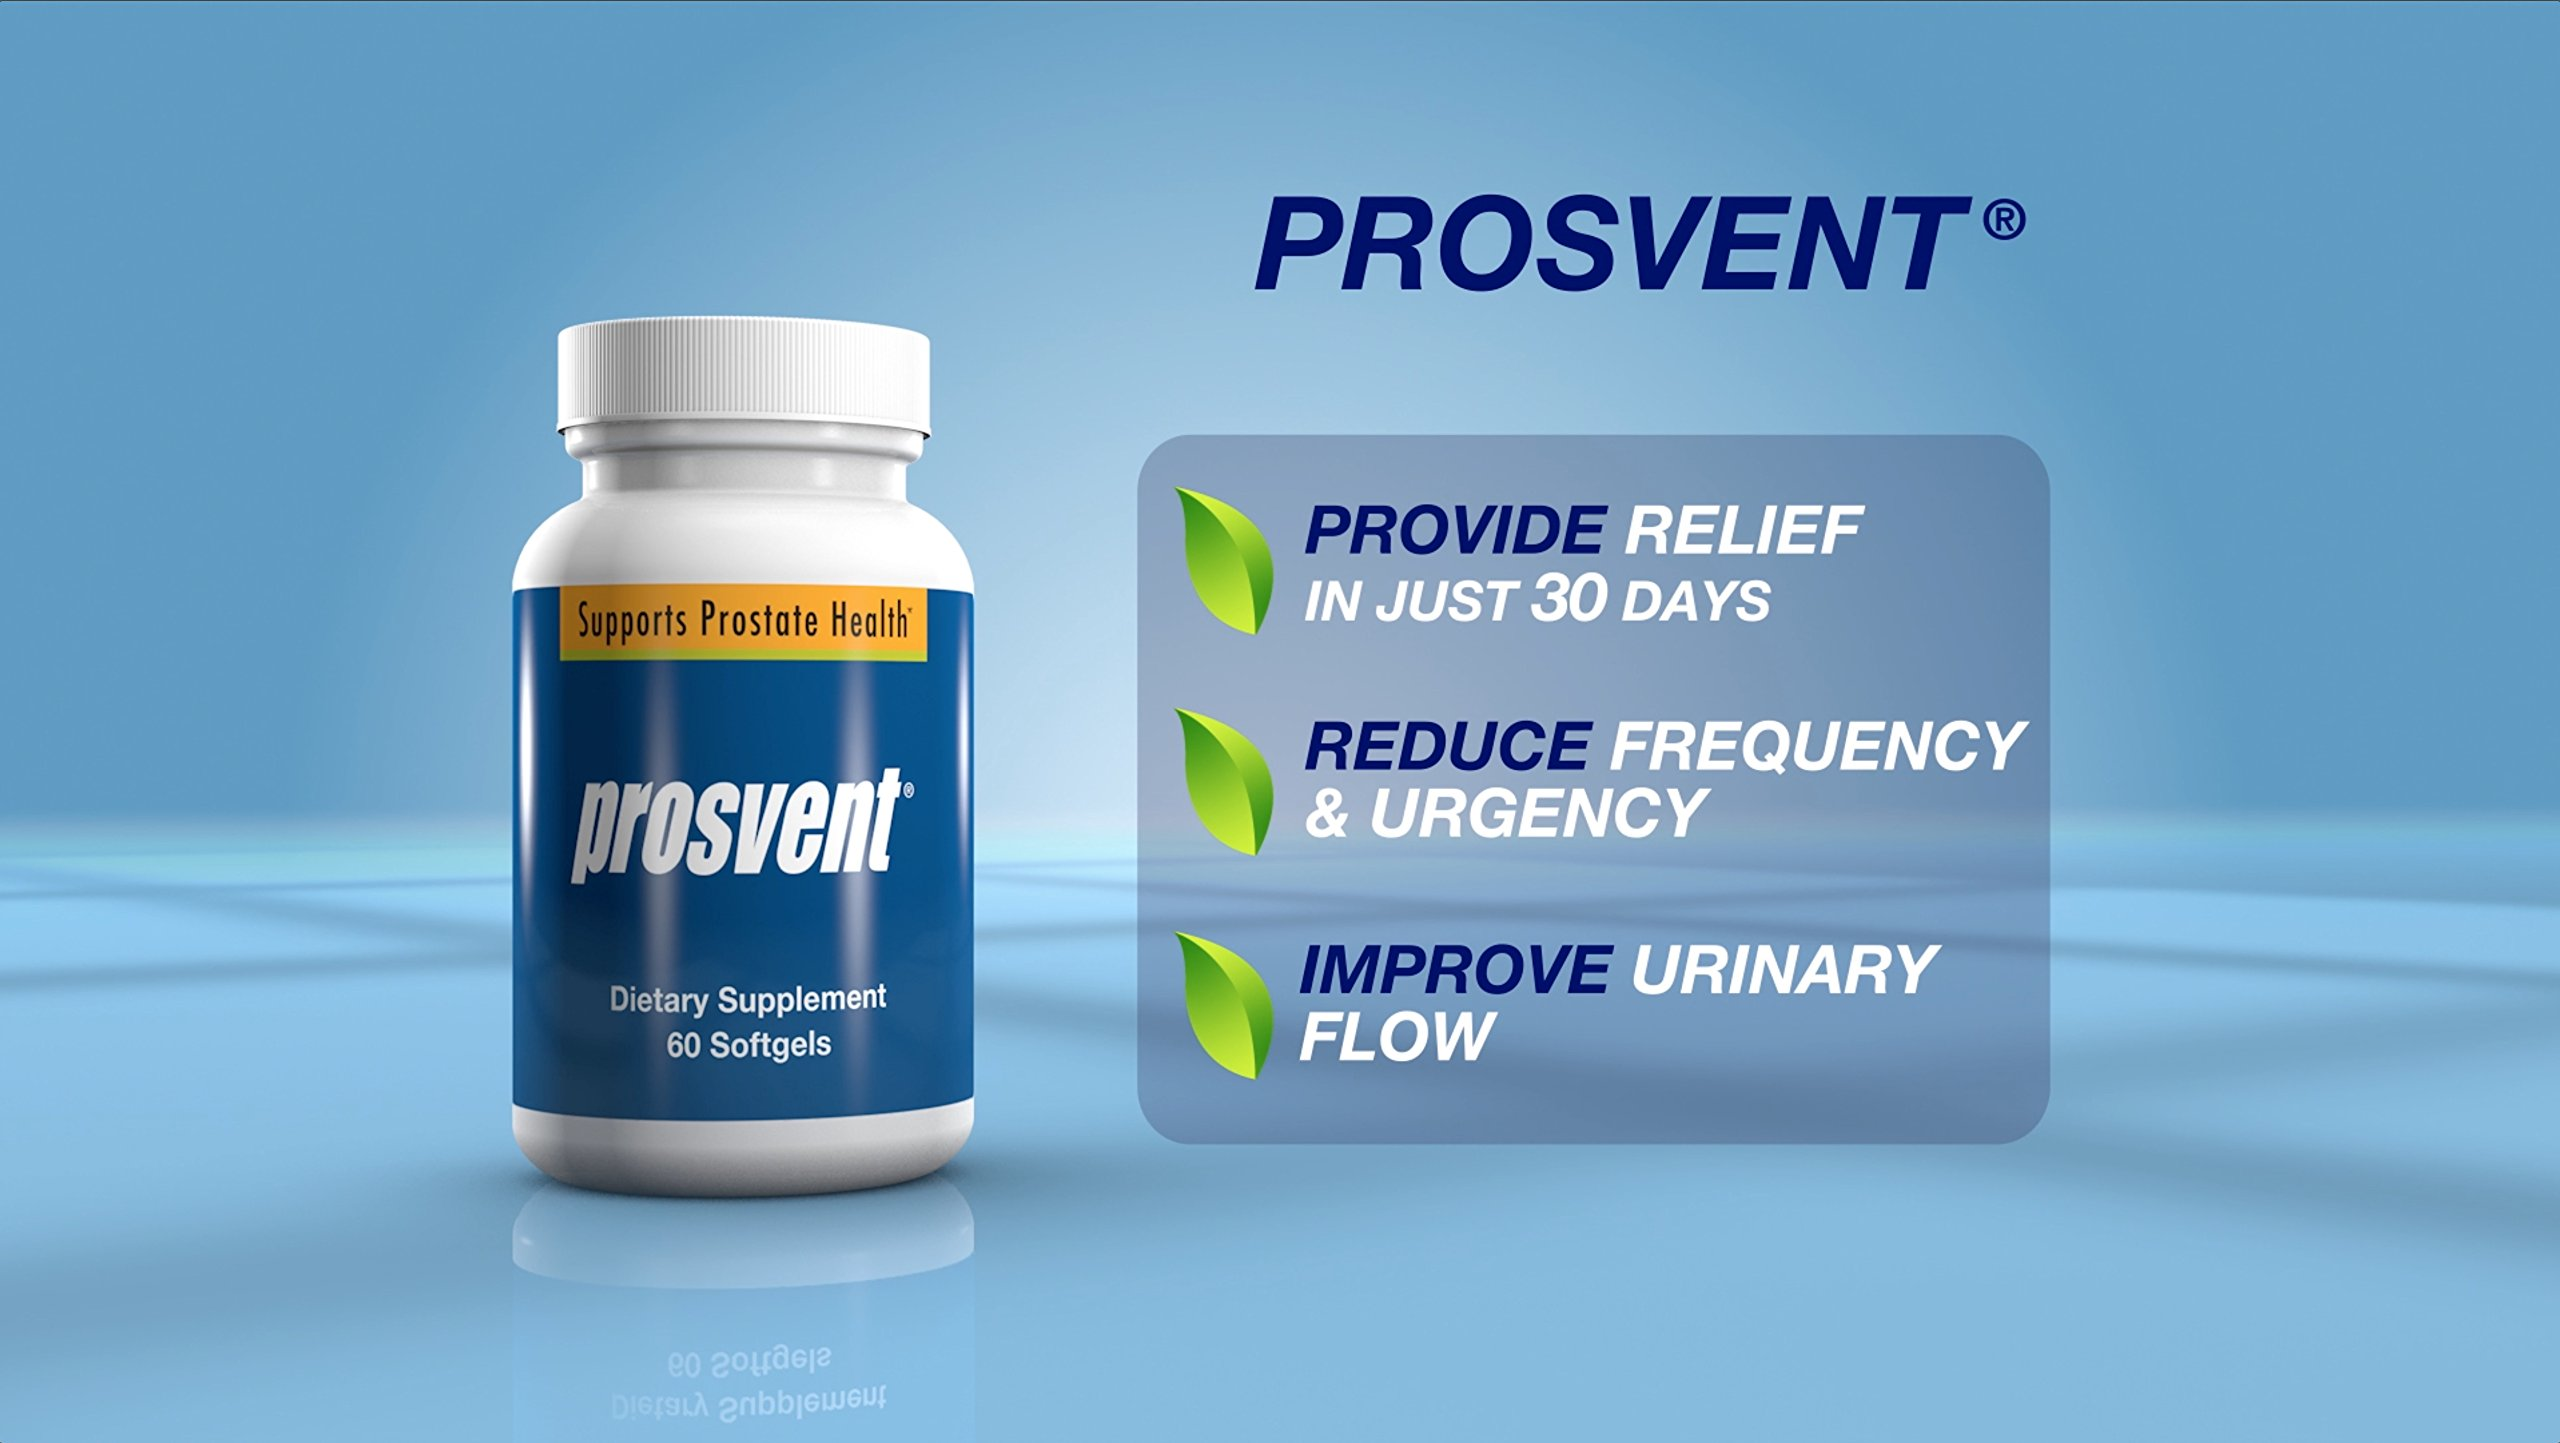 PROSVENT-NATURAL PROSTATE HEALTH SUPPLEMENT -Clinically Tested Ingredients- Reduce Urgency & Frequency. Improve Flow, Sleep, Health & Quality Of Life. OVER 180 MILLION DOSES SOLD! –3 Month Supply by Prosvent (Image #6)